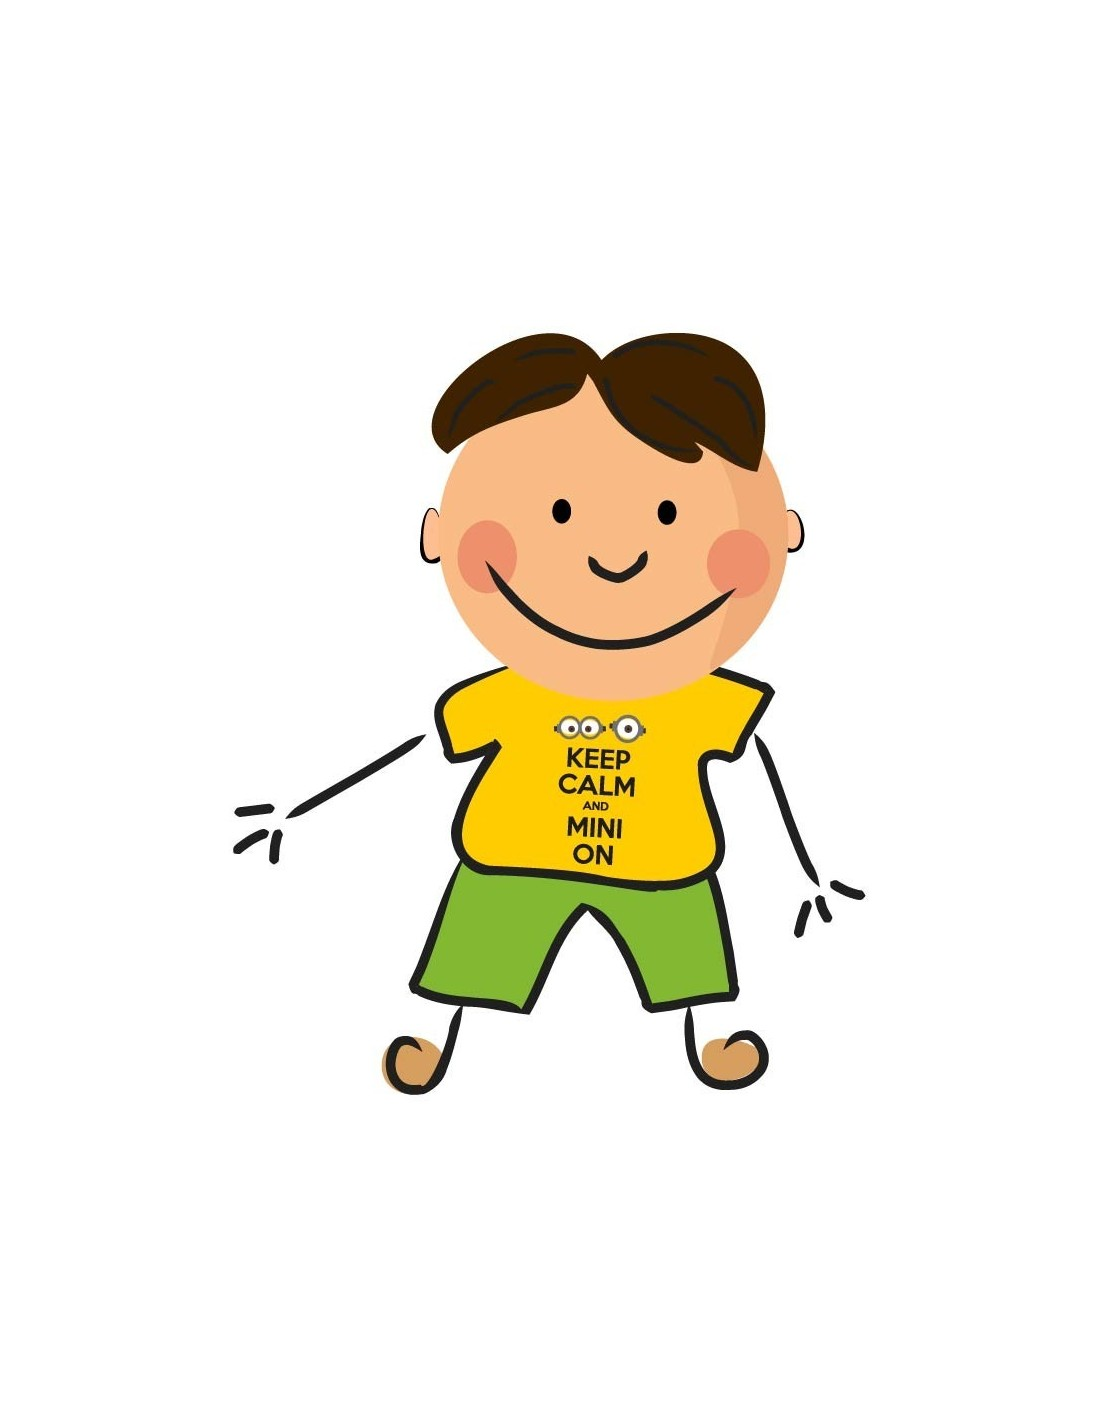 Keep and mini on. Calm clipart calm boy